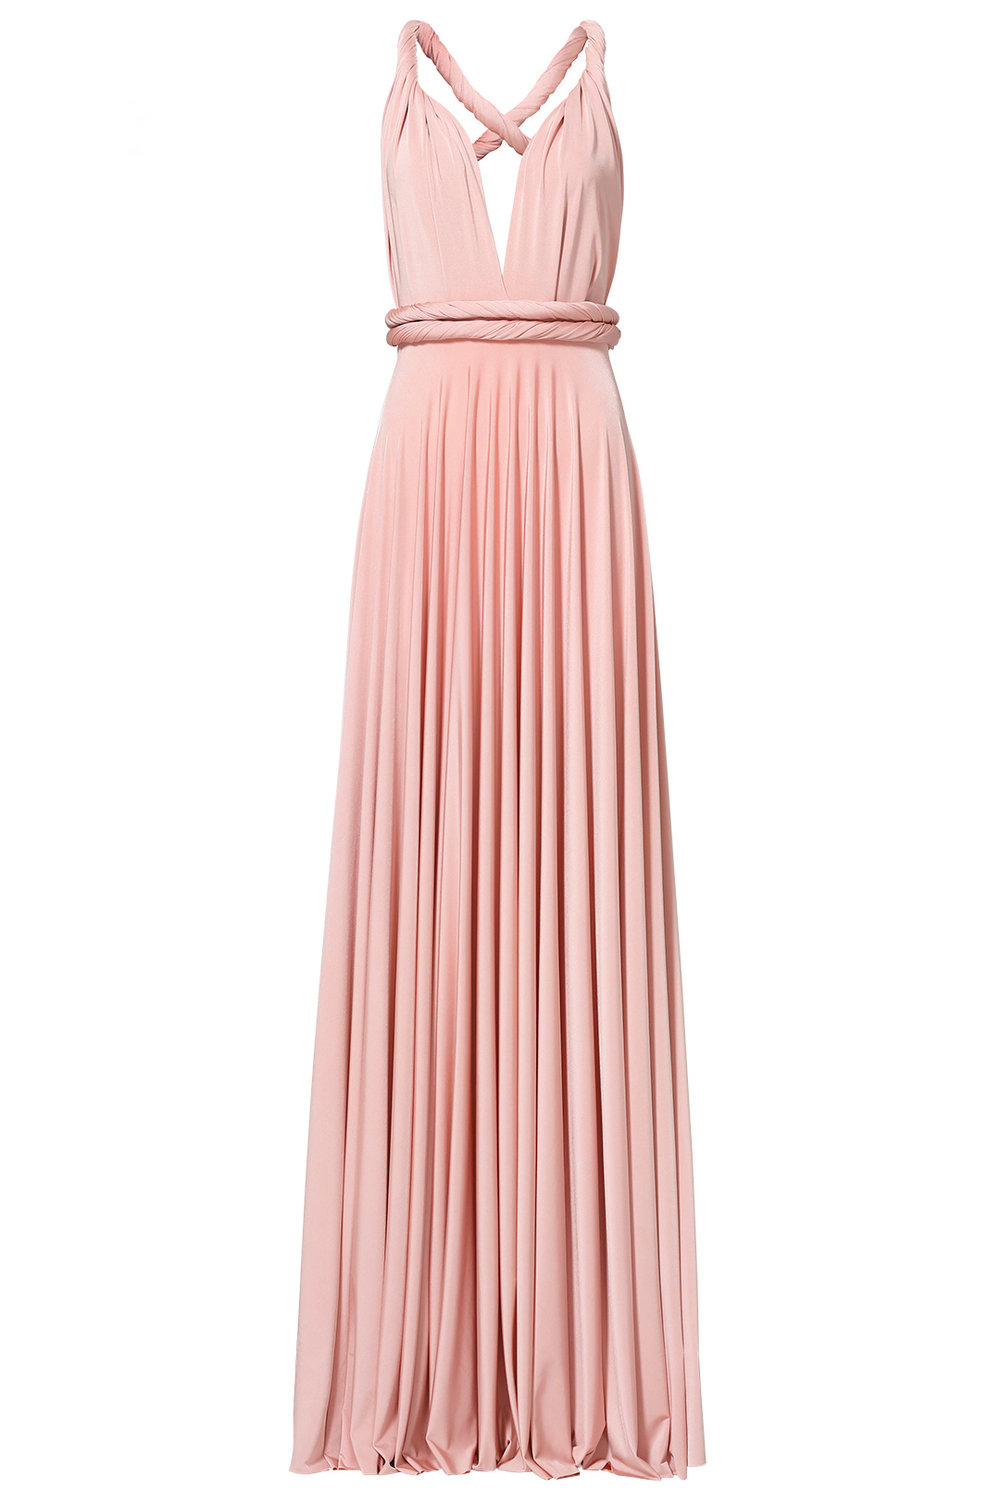 twobirdsBlush Classic Convertible Gown - $50.00-$70.00